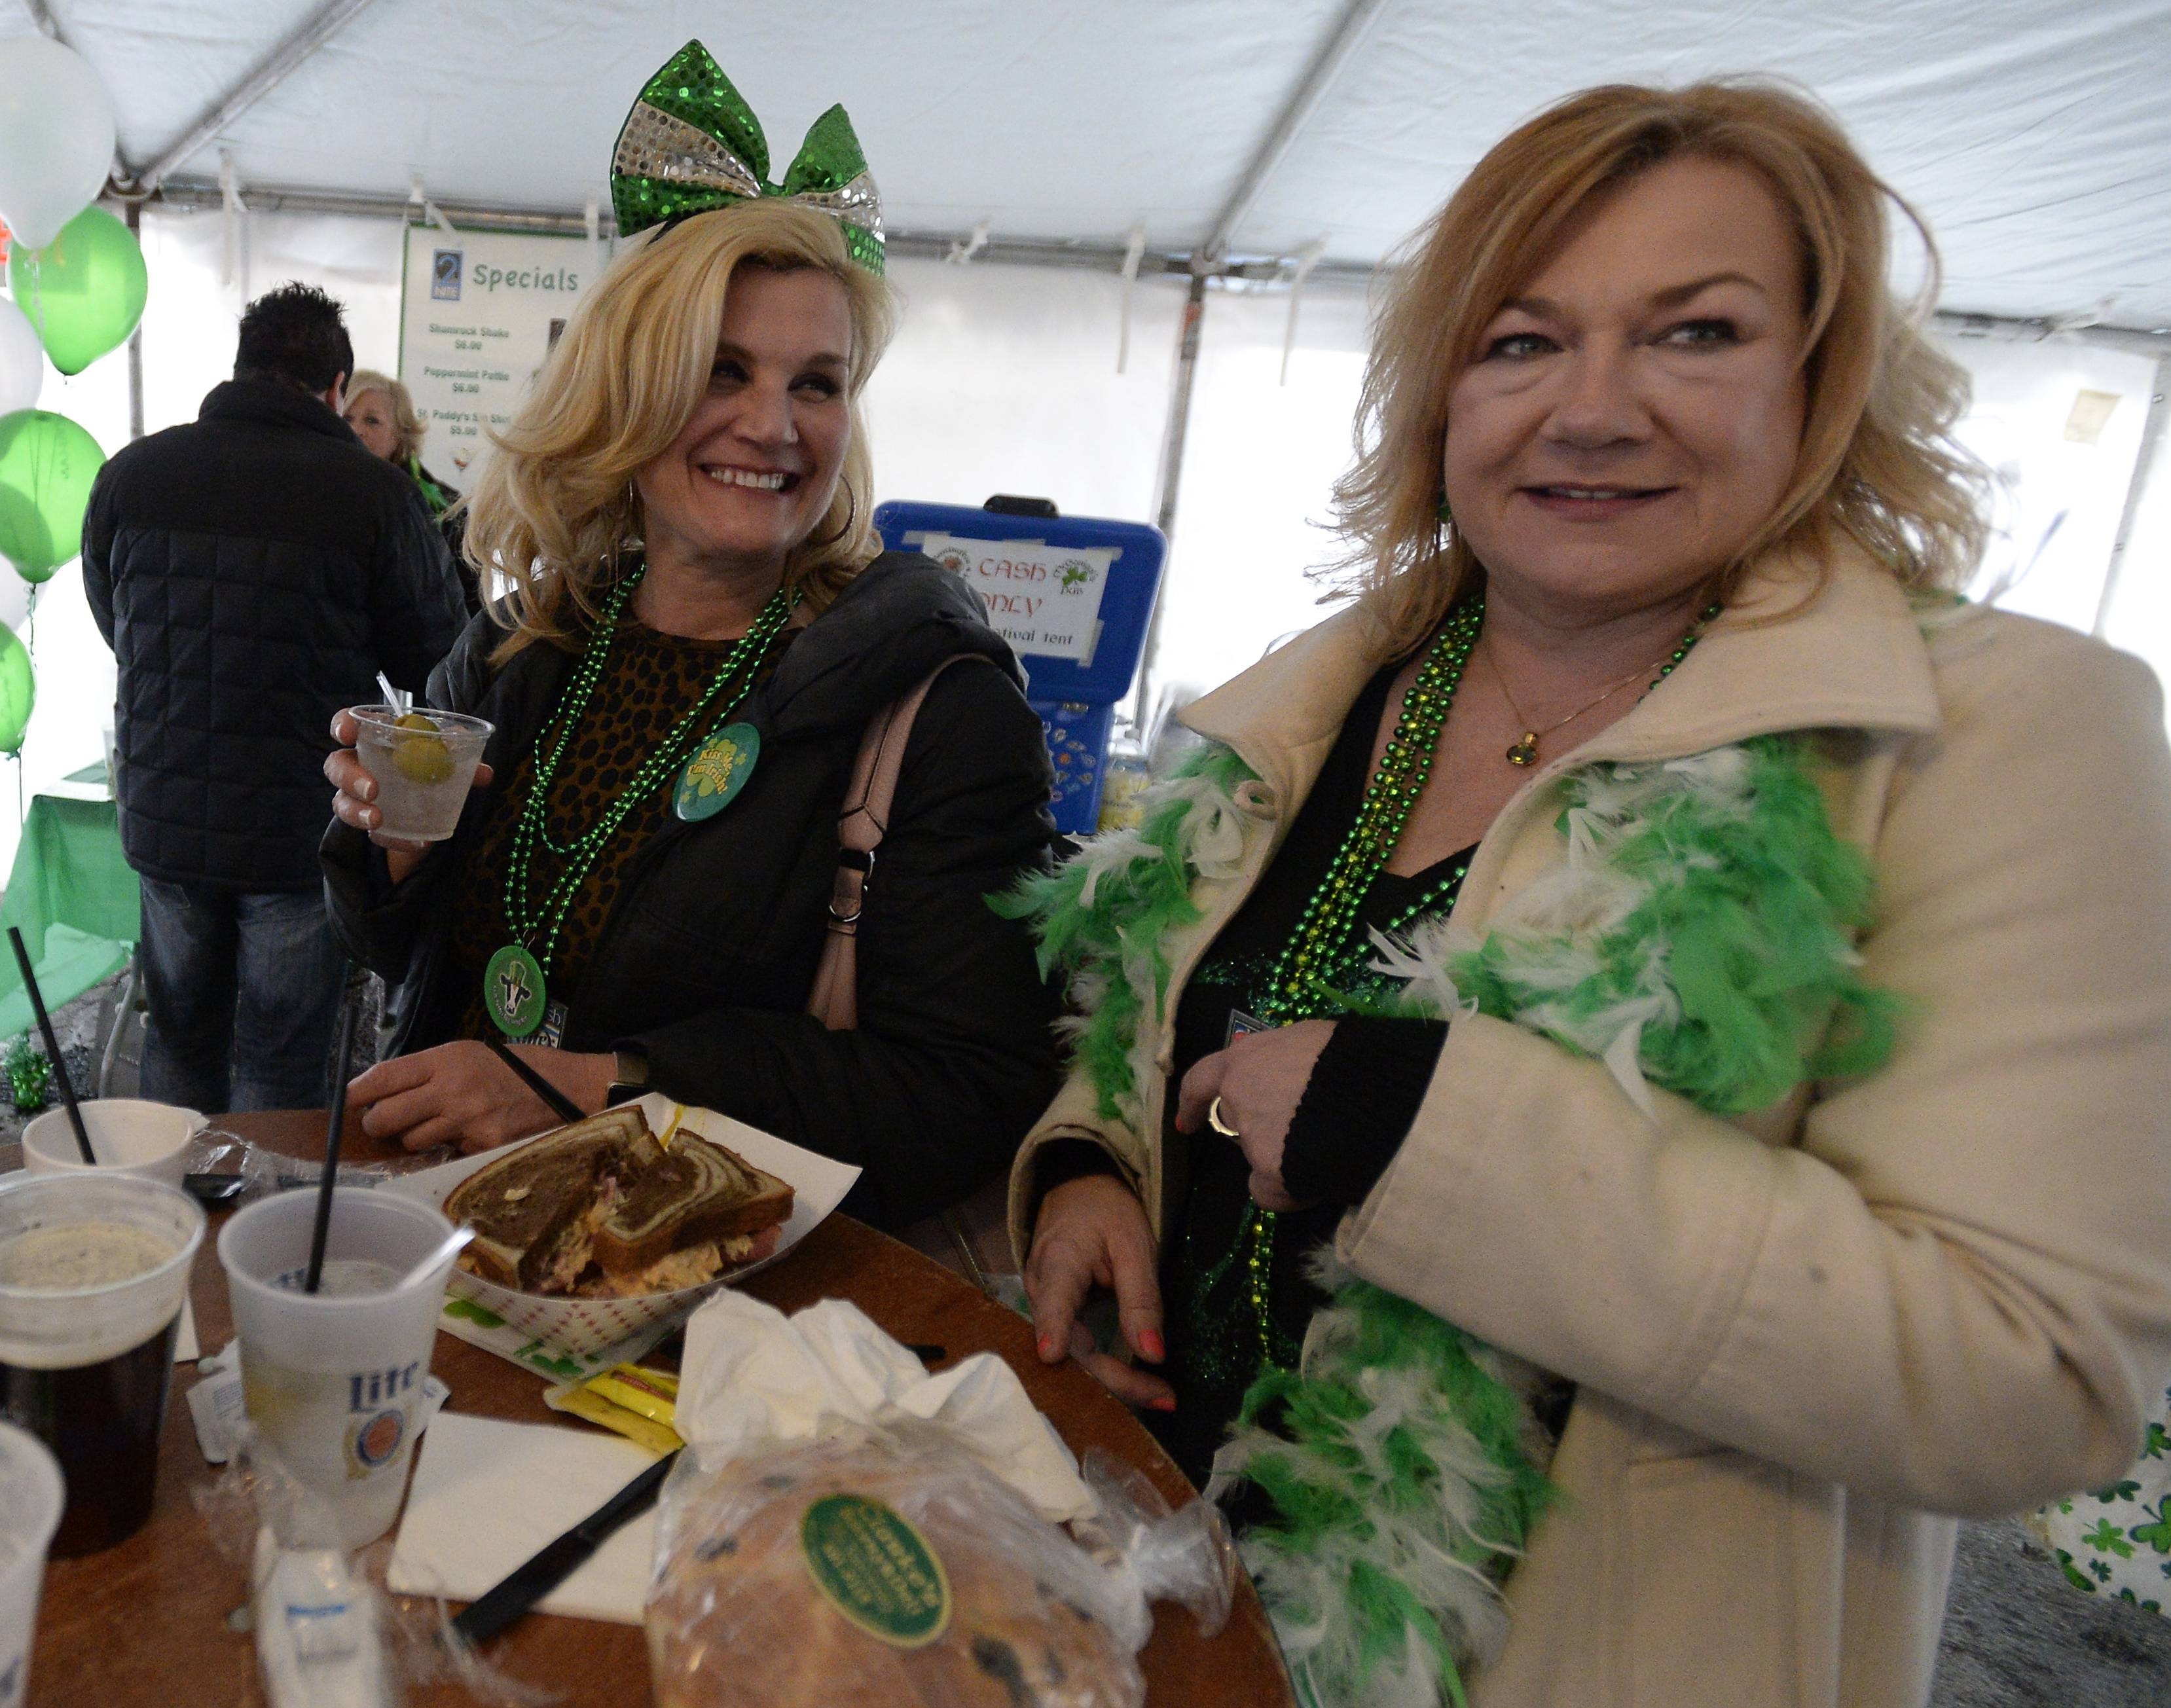 Annette DePaola of Barrington, left, and Tara McNally of Glendale Heights sample the beer and the corned beef sandwiches at McGonigal's Pub in Barrington on Thursday.